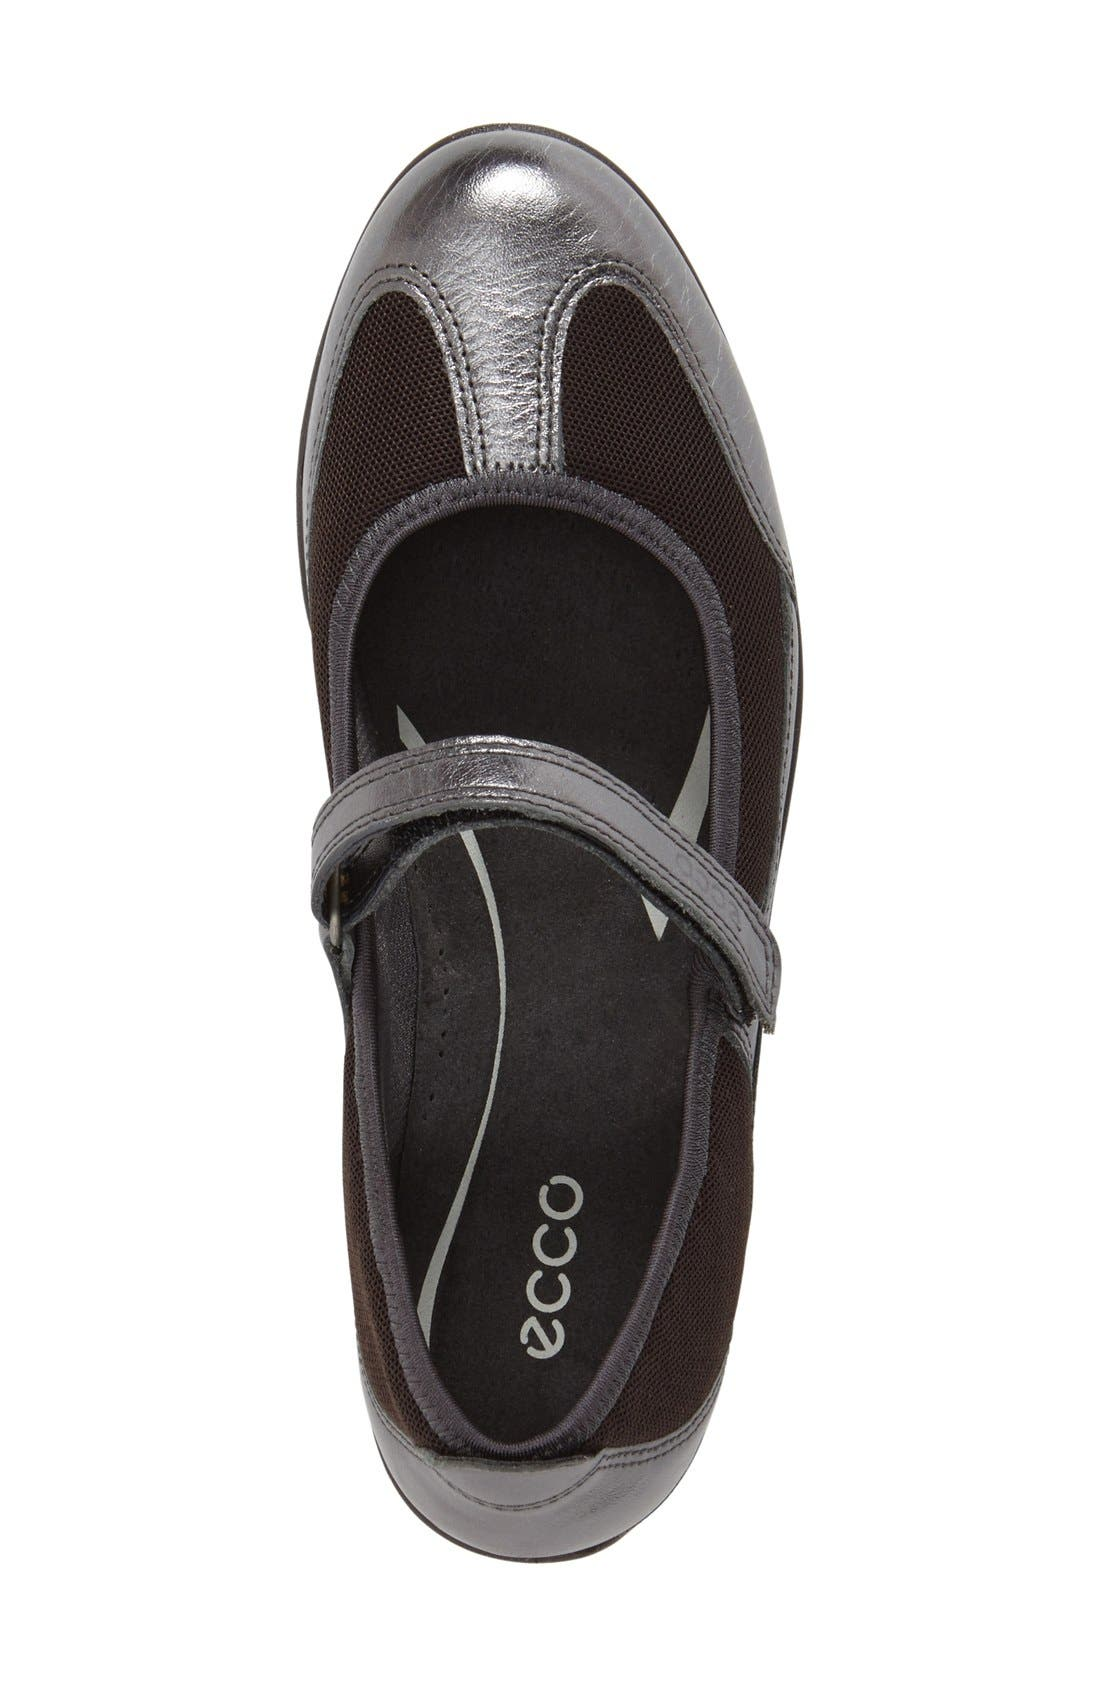 Alternate Image 3  - ECCO 'Bluma' Mary Jane Flat (Women)